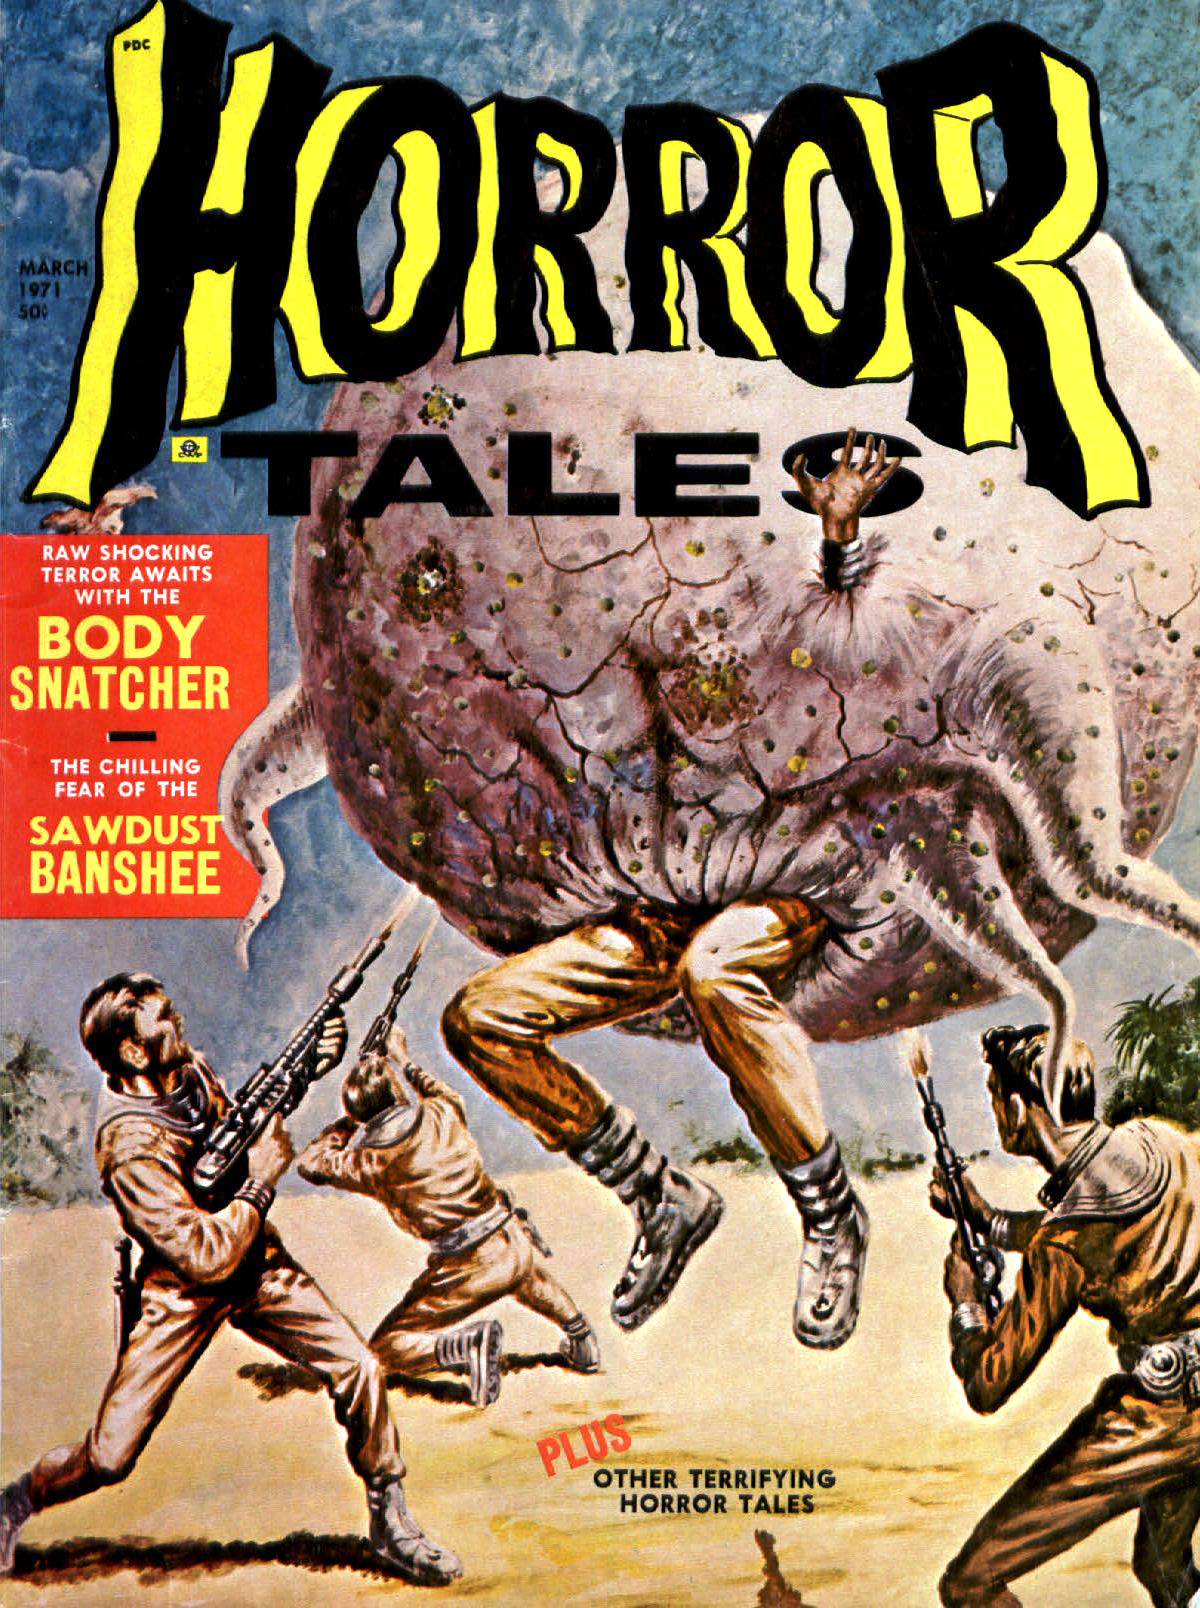 Horror Tales - Vol.3 #2 (Eerie Publications, 1971)